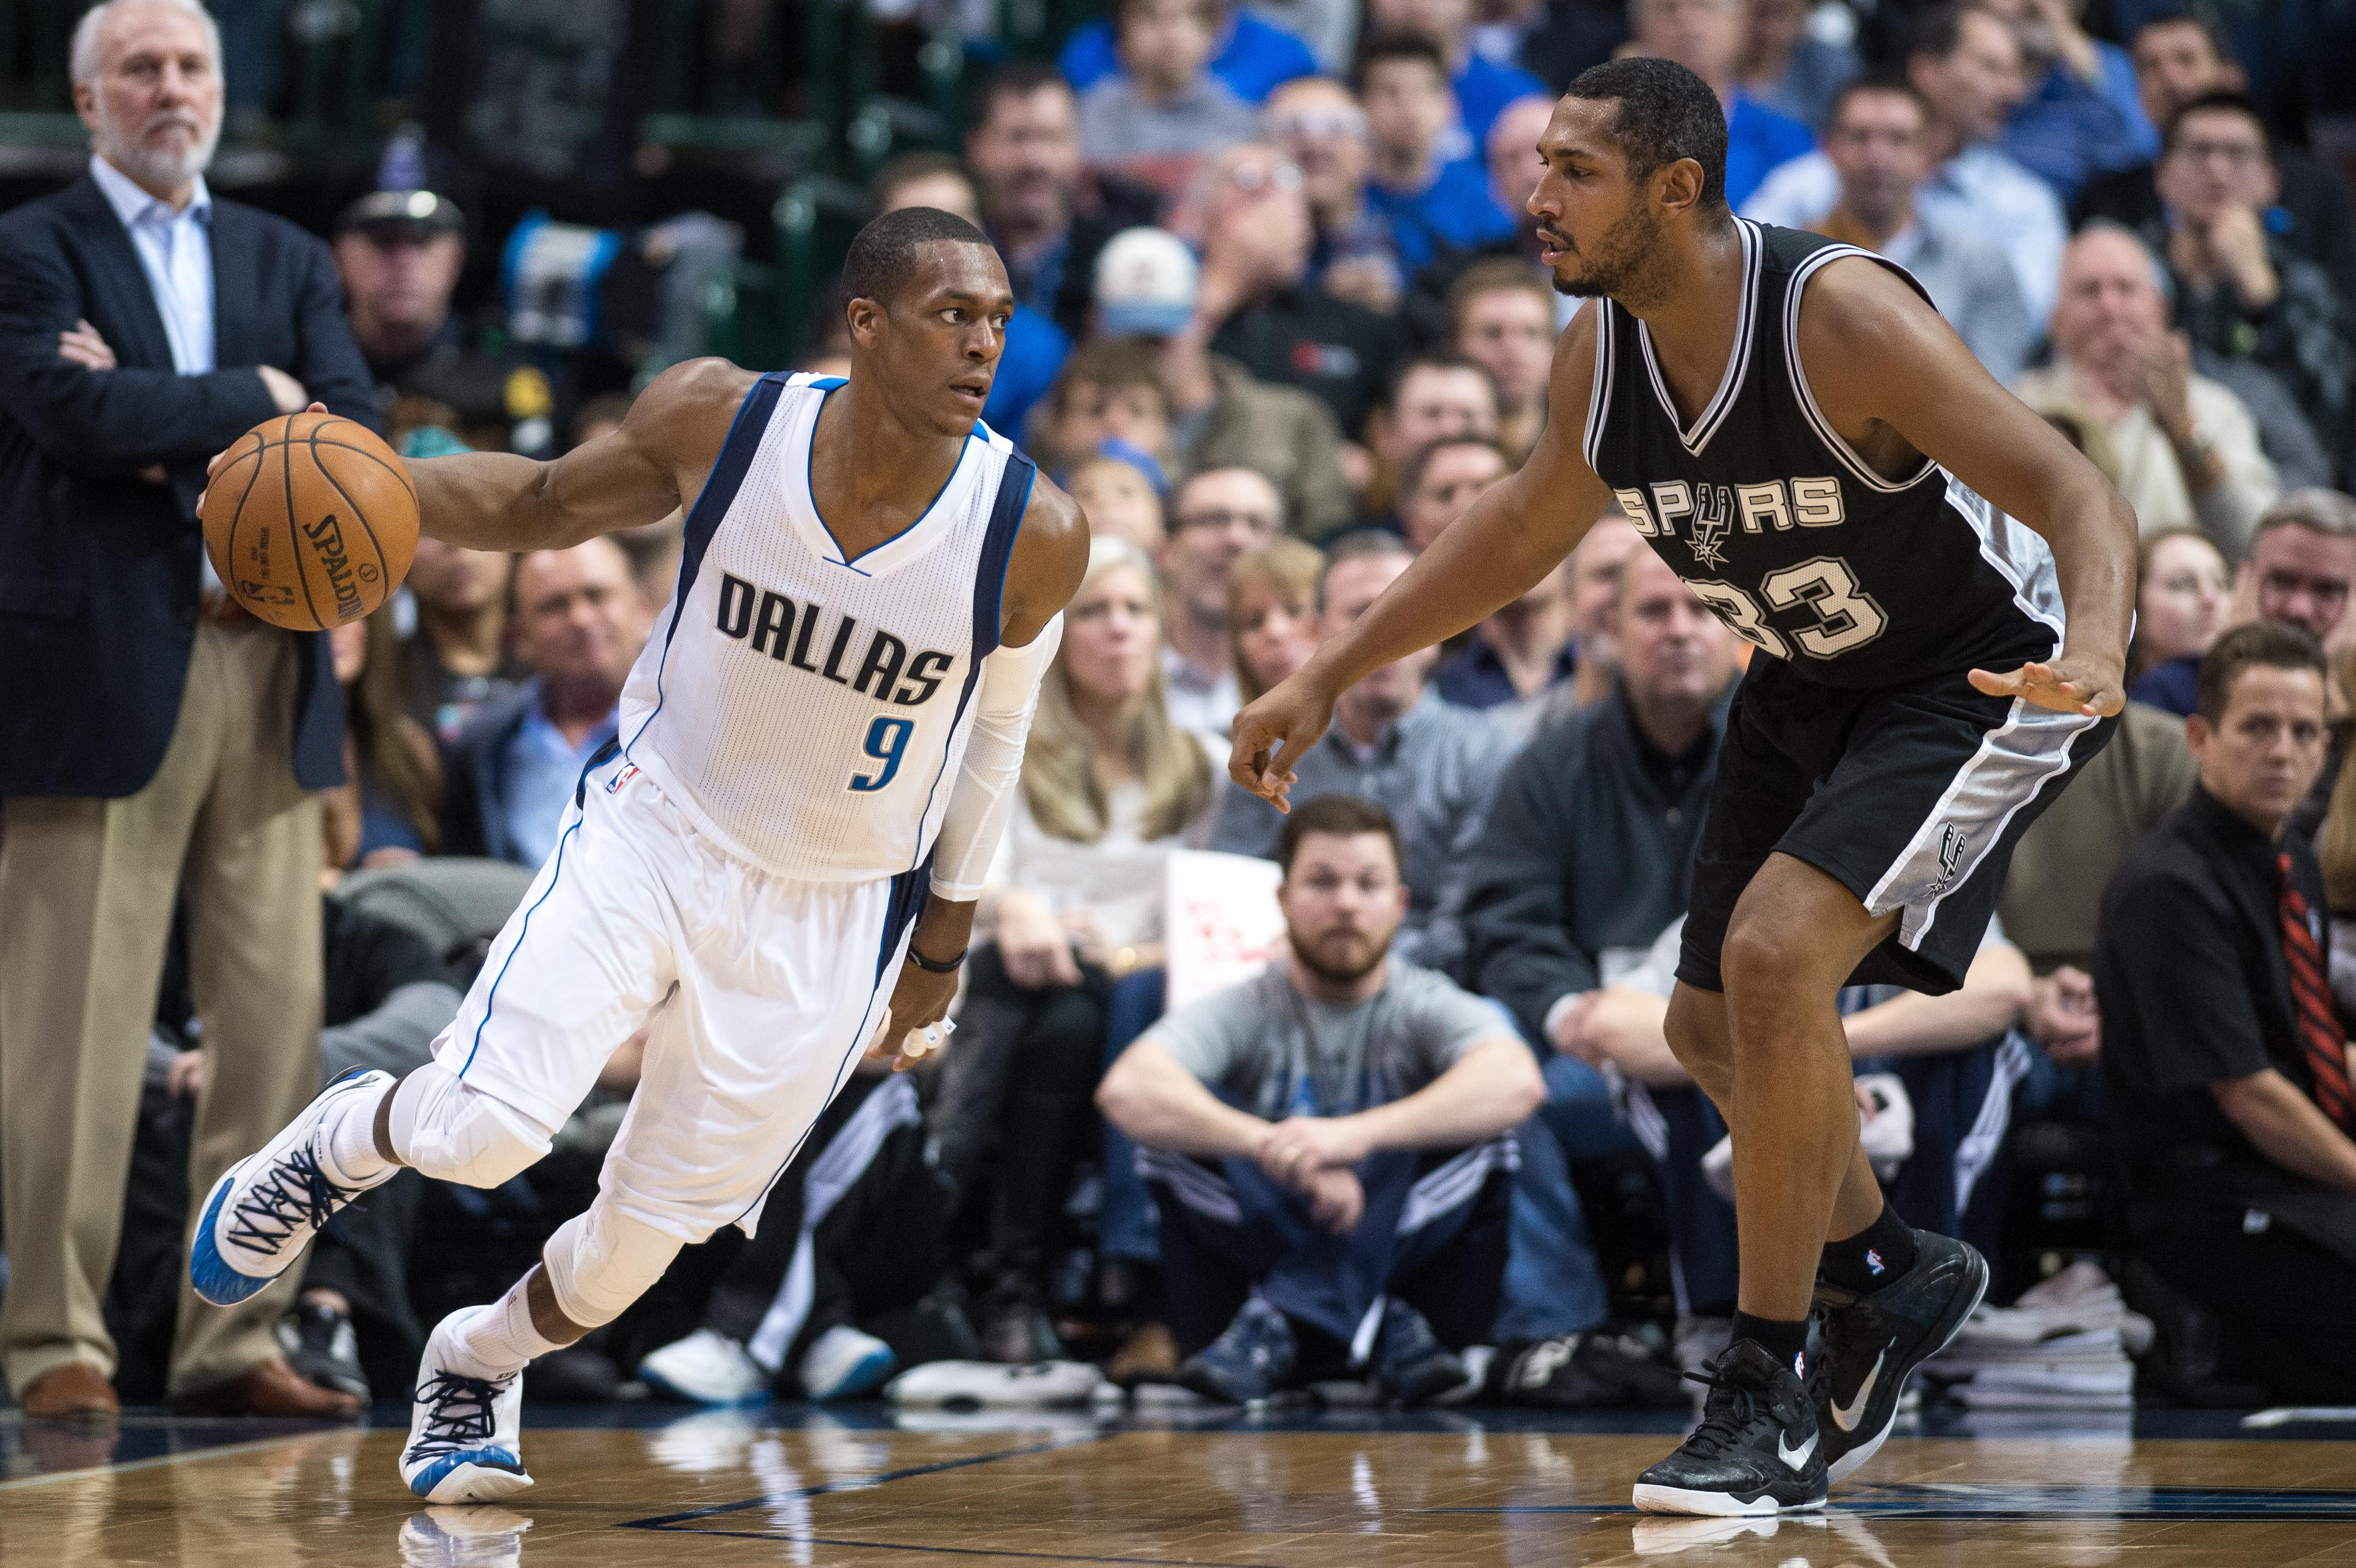 Rajon Rondo shows flashes of brilliance in debut with Mavericks